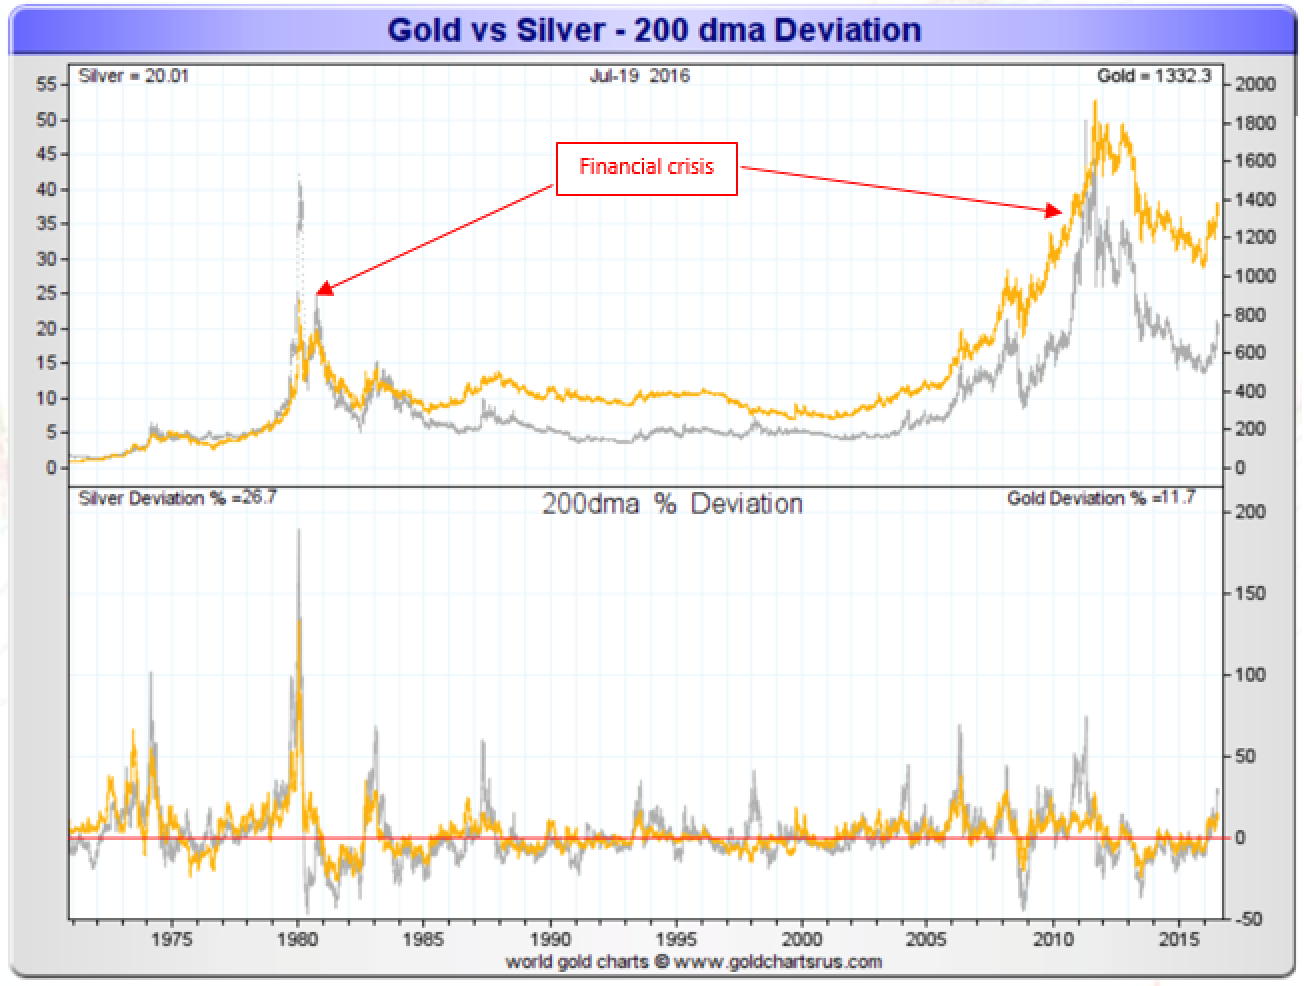 Gold vs Silver - 200 dma Deviation